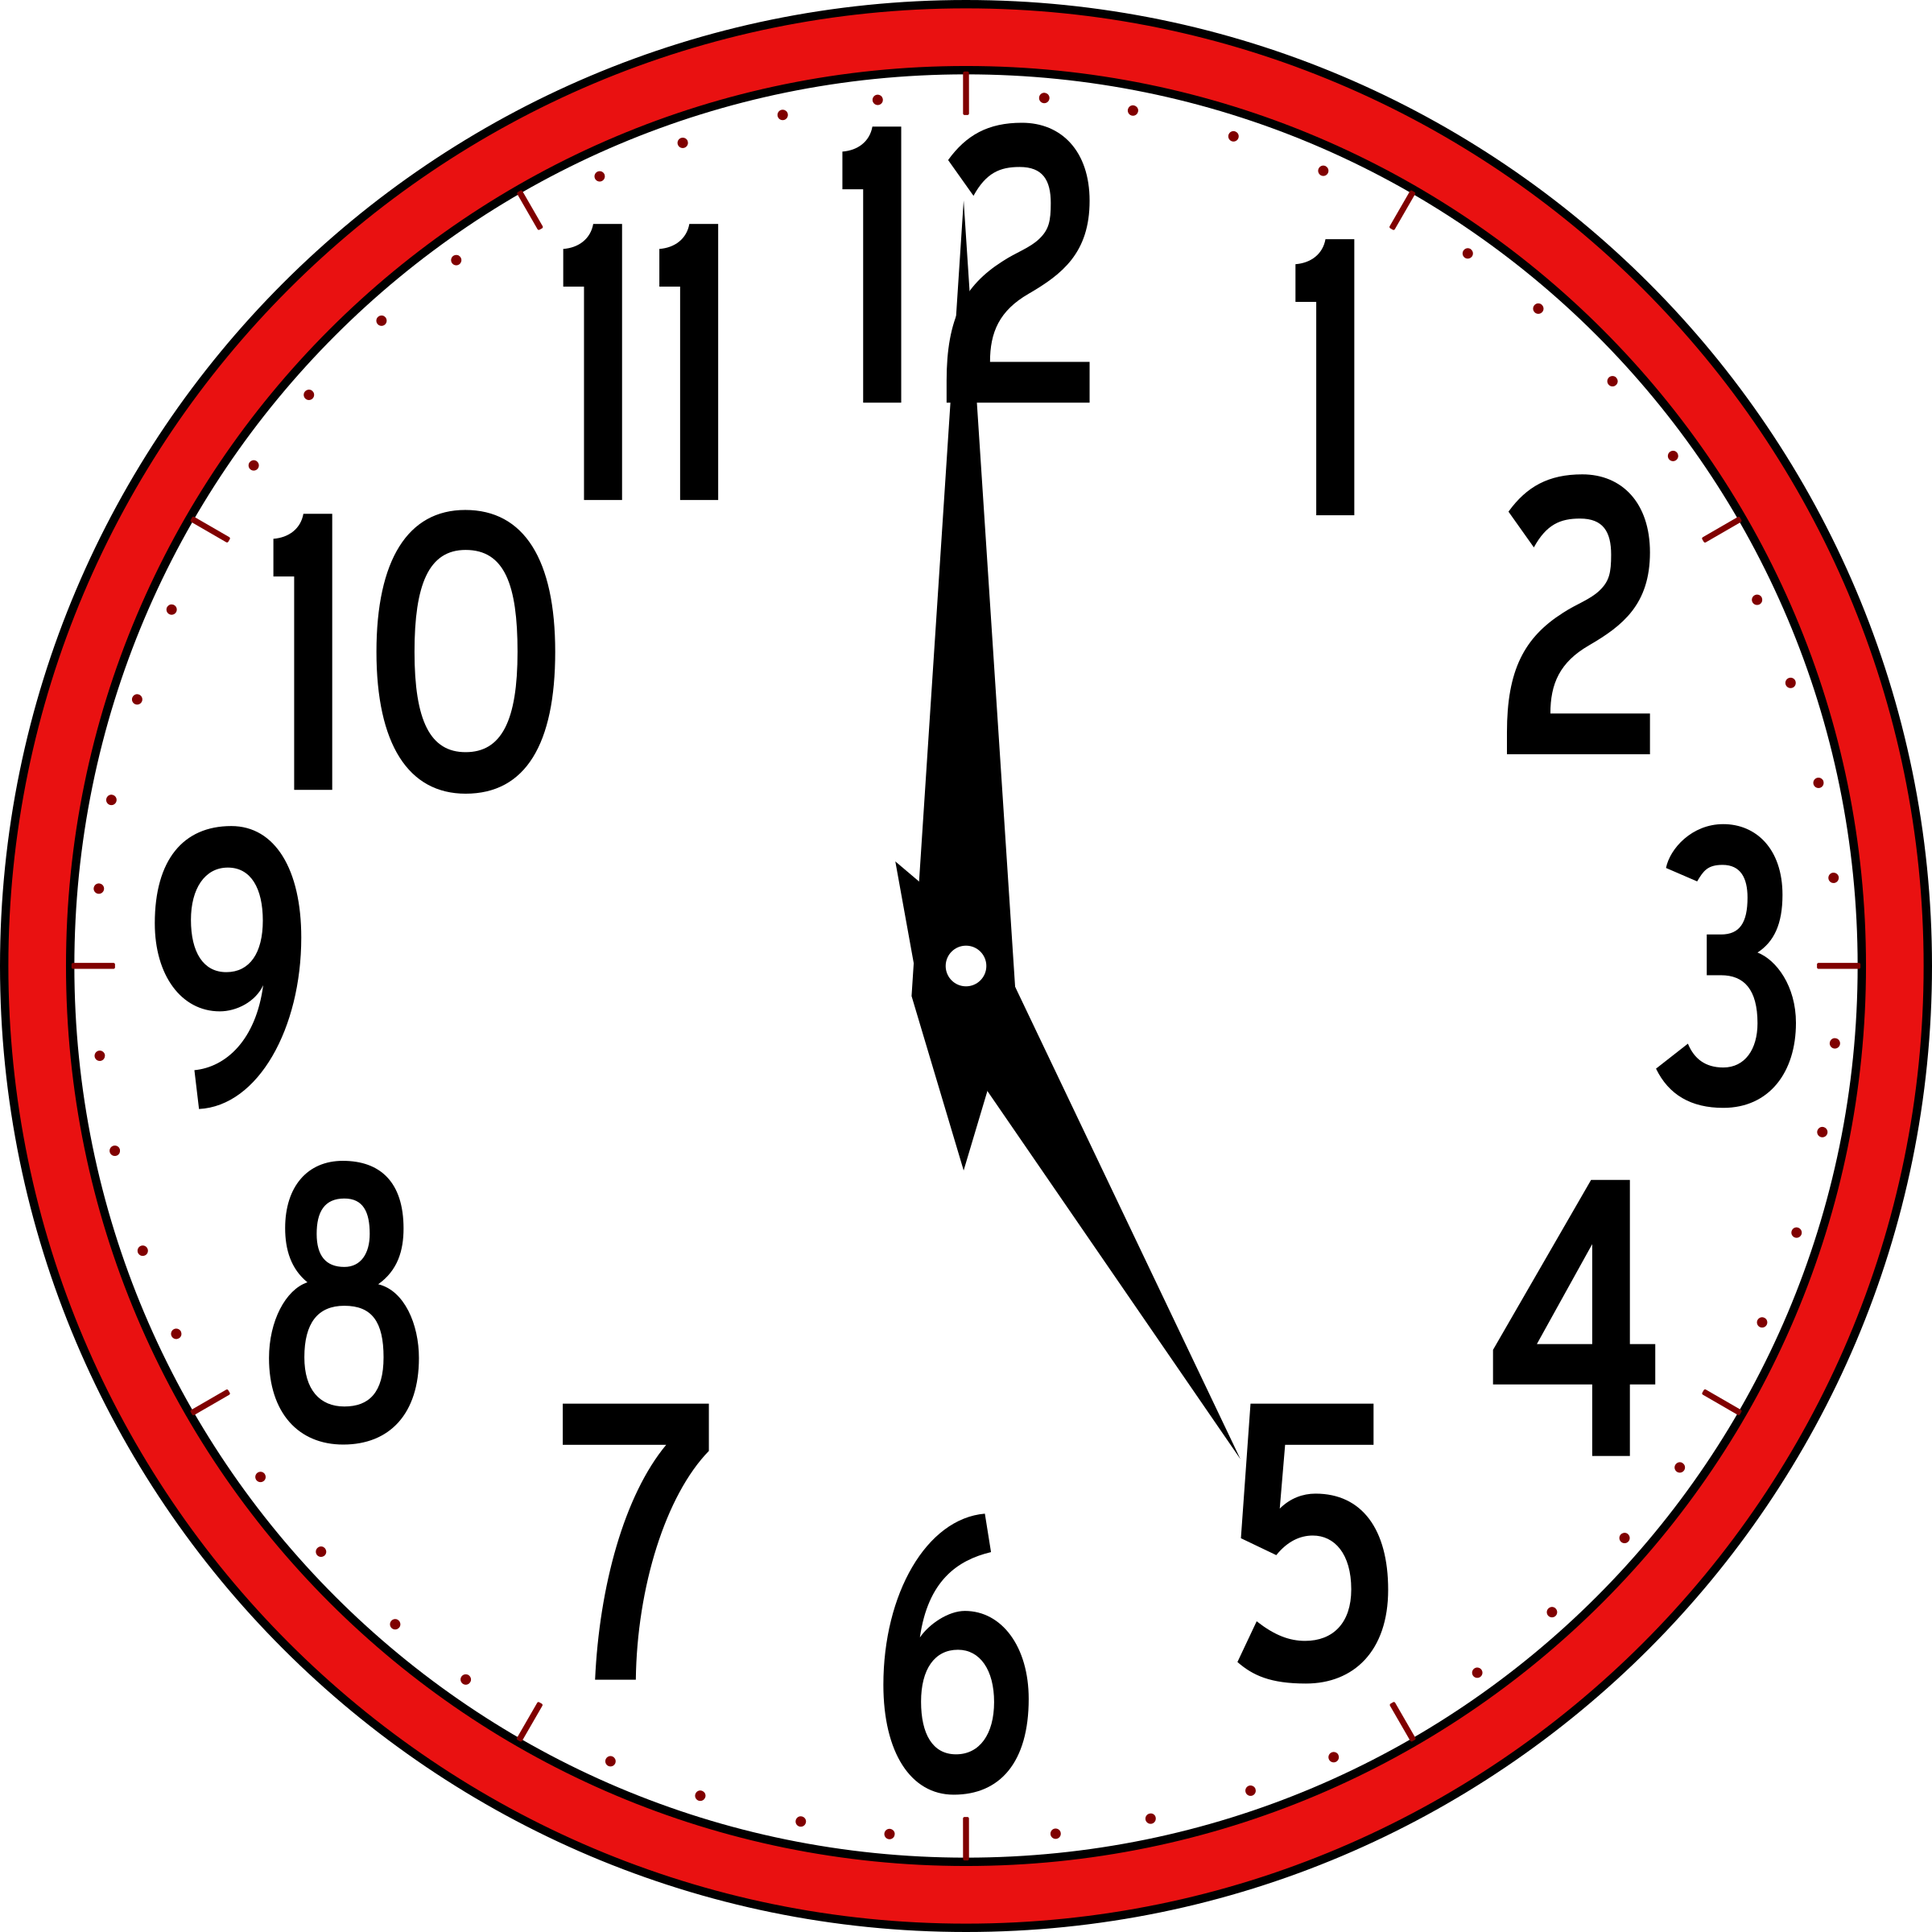 Change vector ahead. Set clocks back clipart